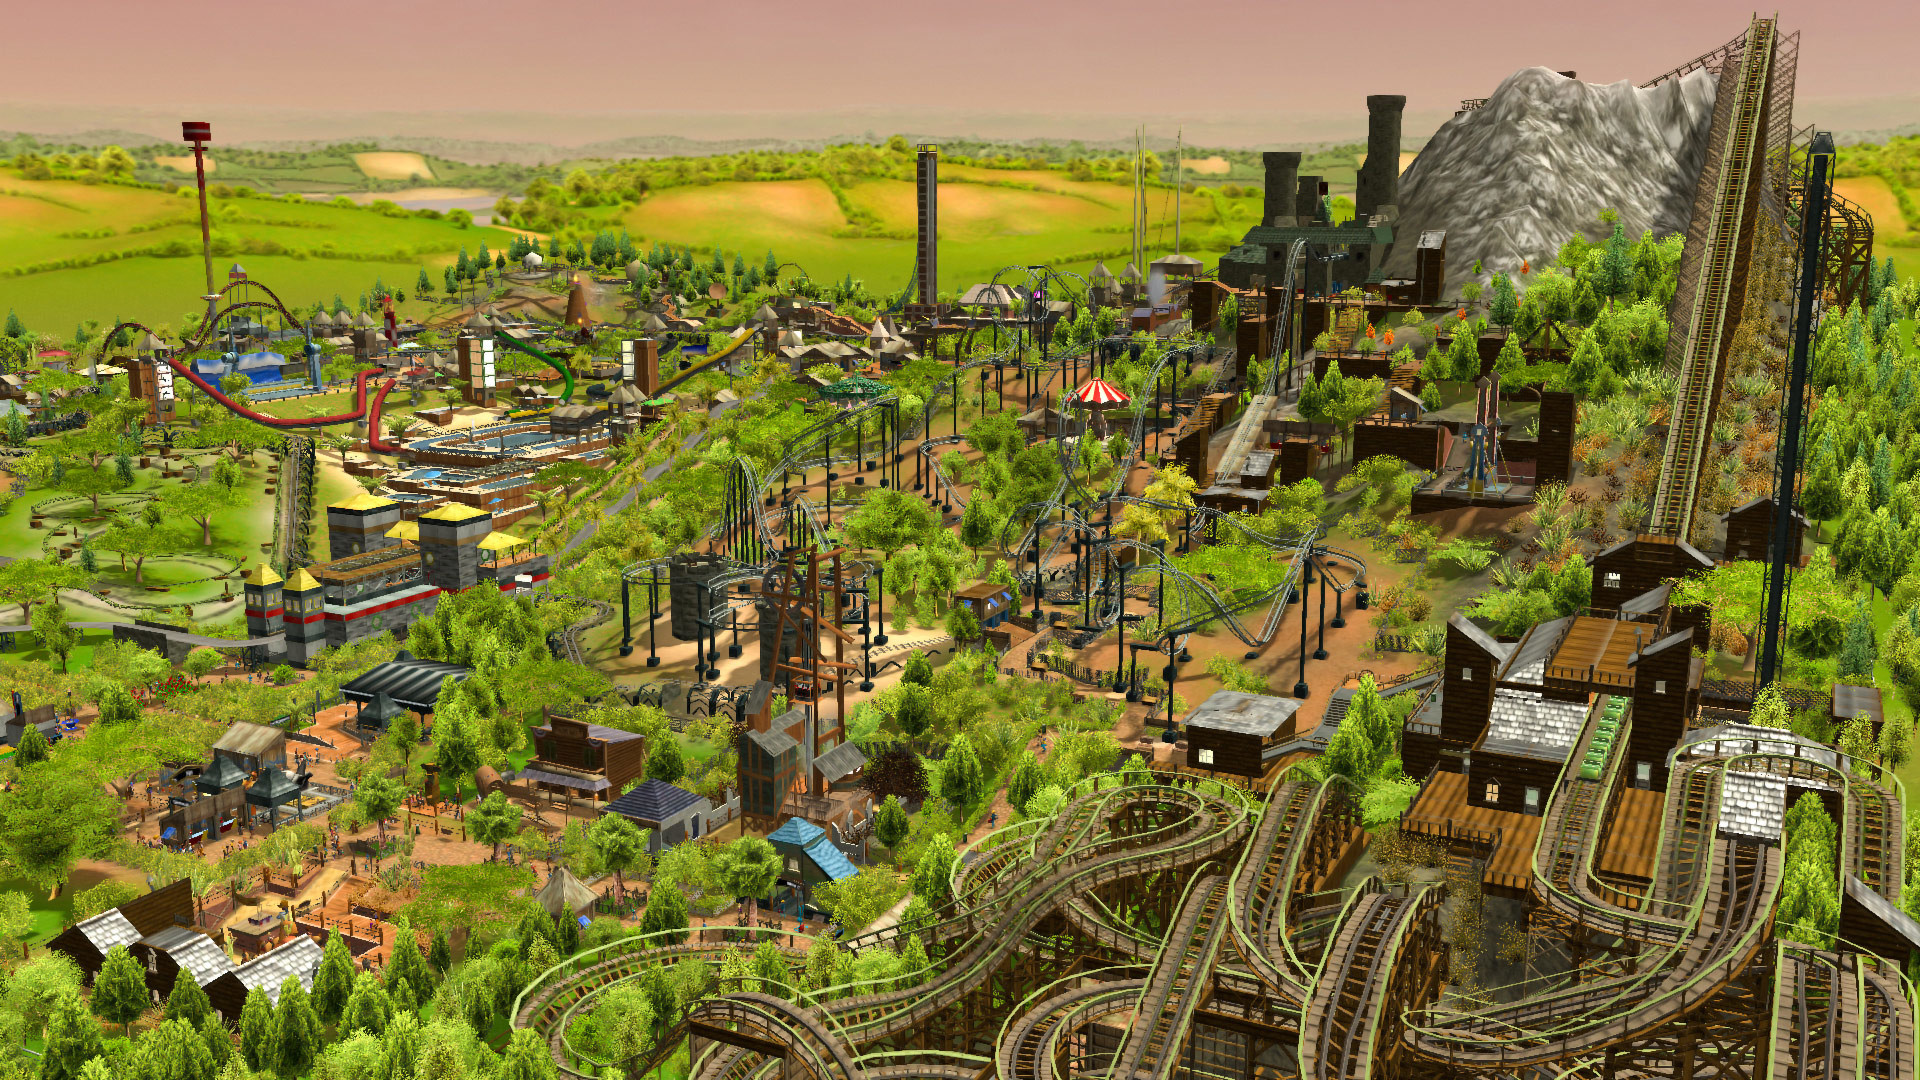 Claim RollerCoaster Tycoon 3 Complete Edition for free